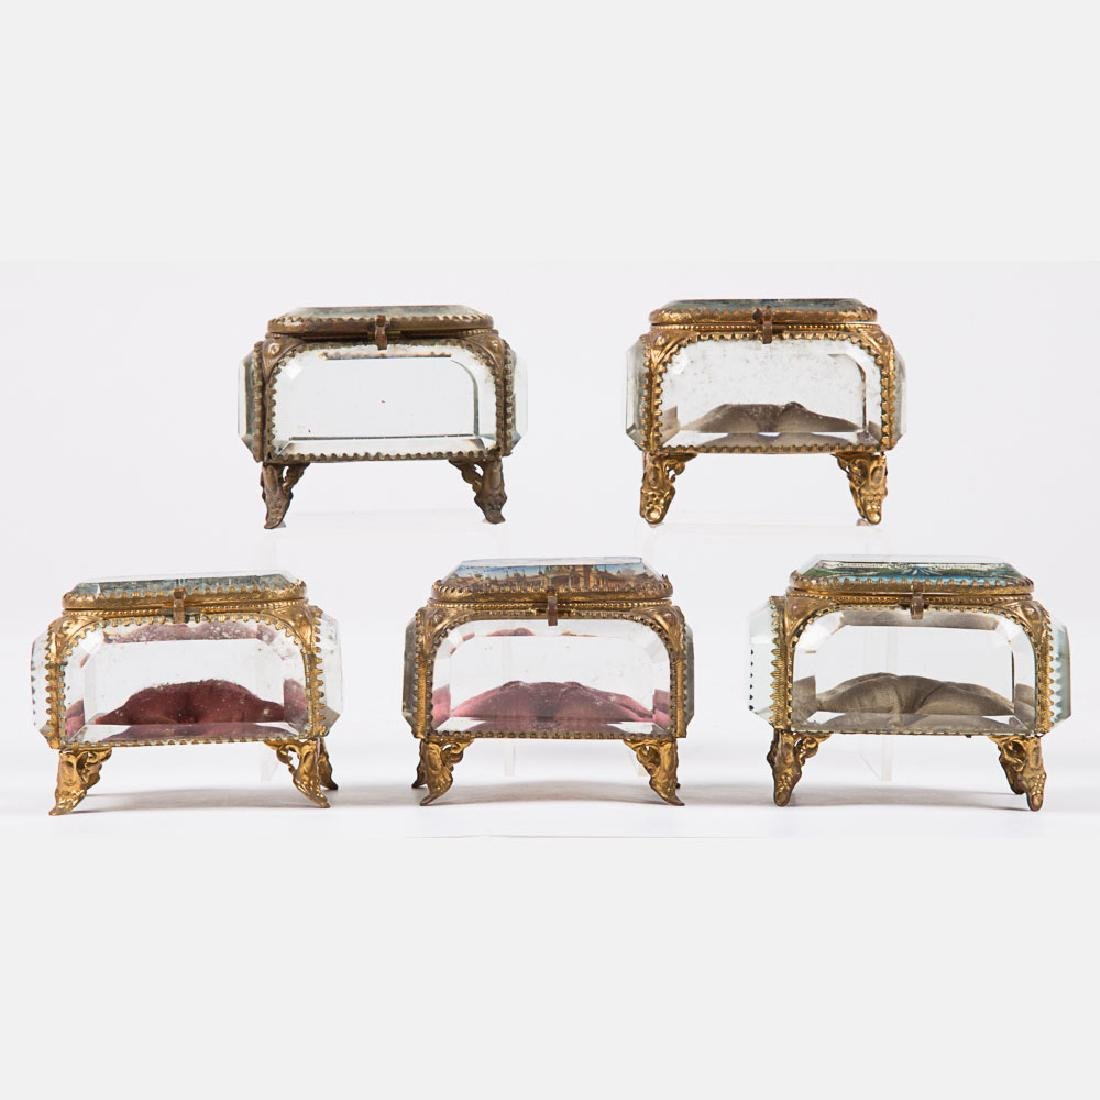 A Group of Five Glass and Brass Jewelry Boxes from the - 2